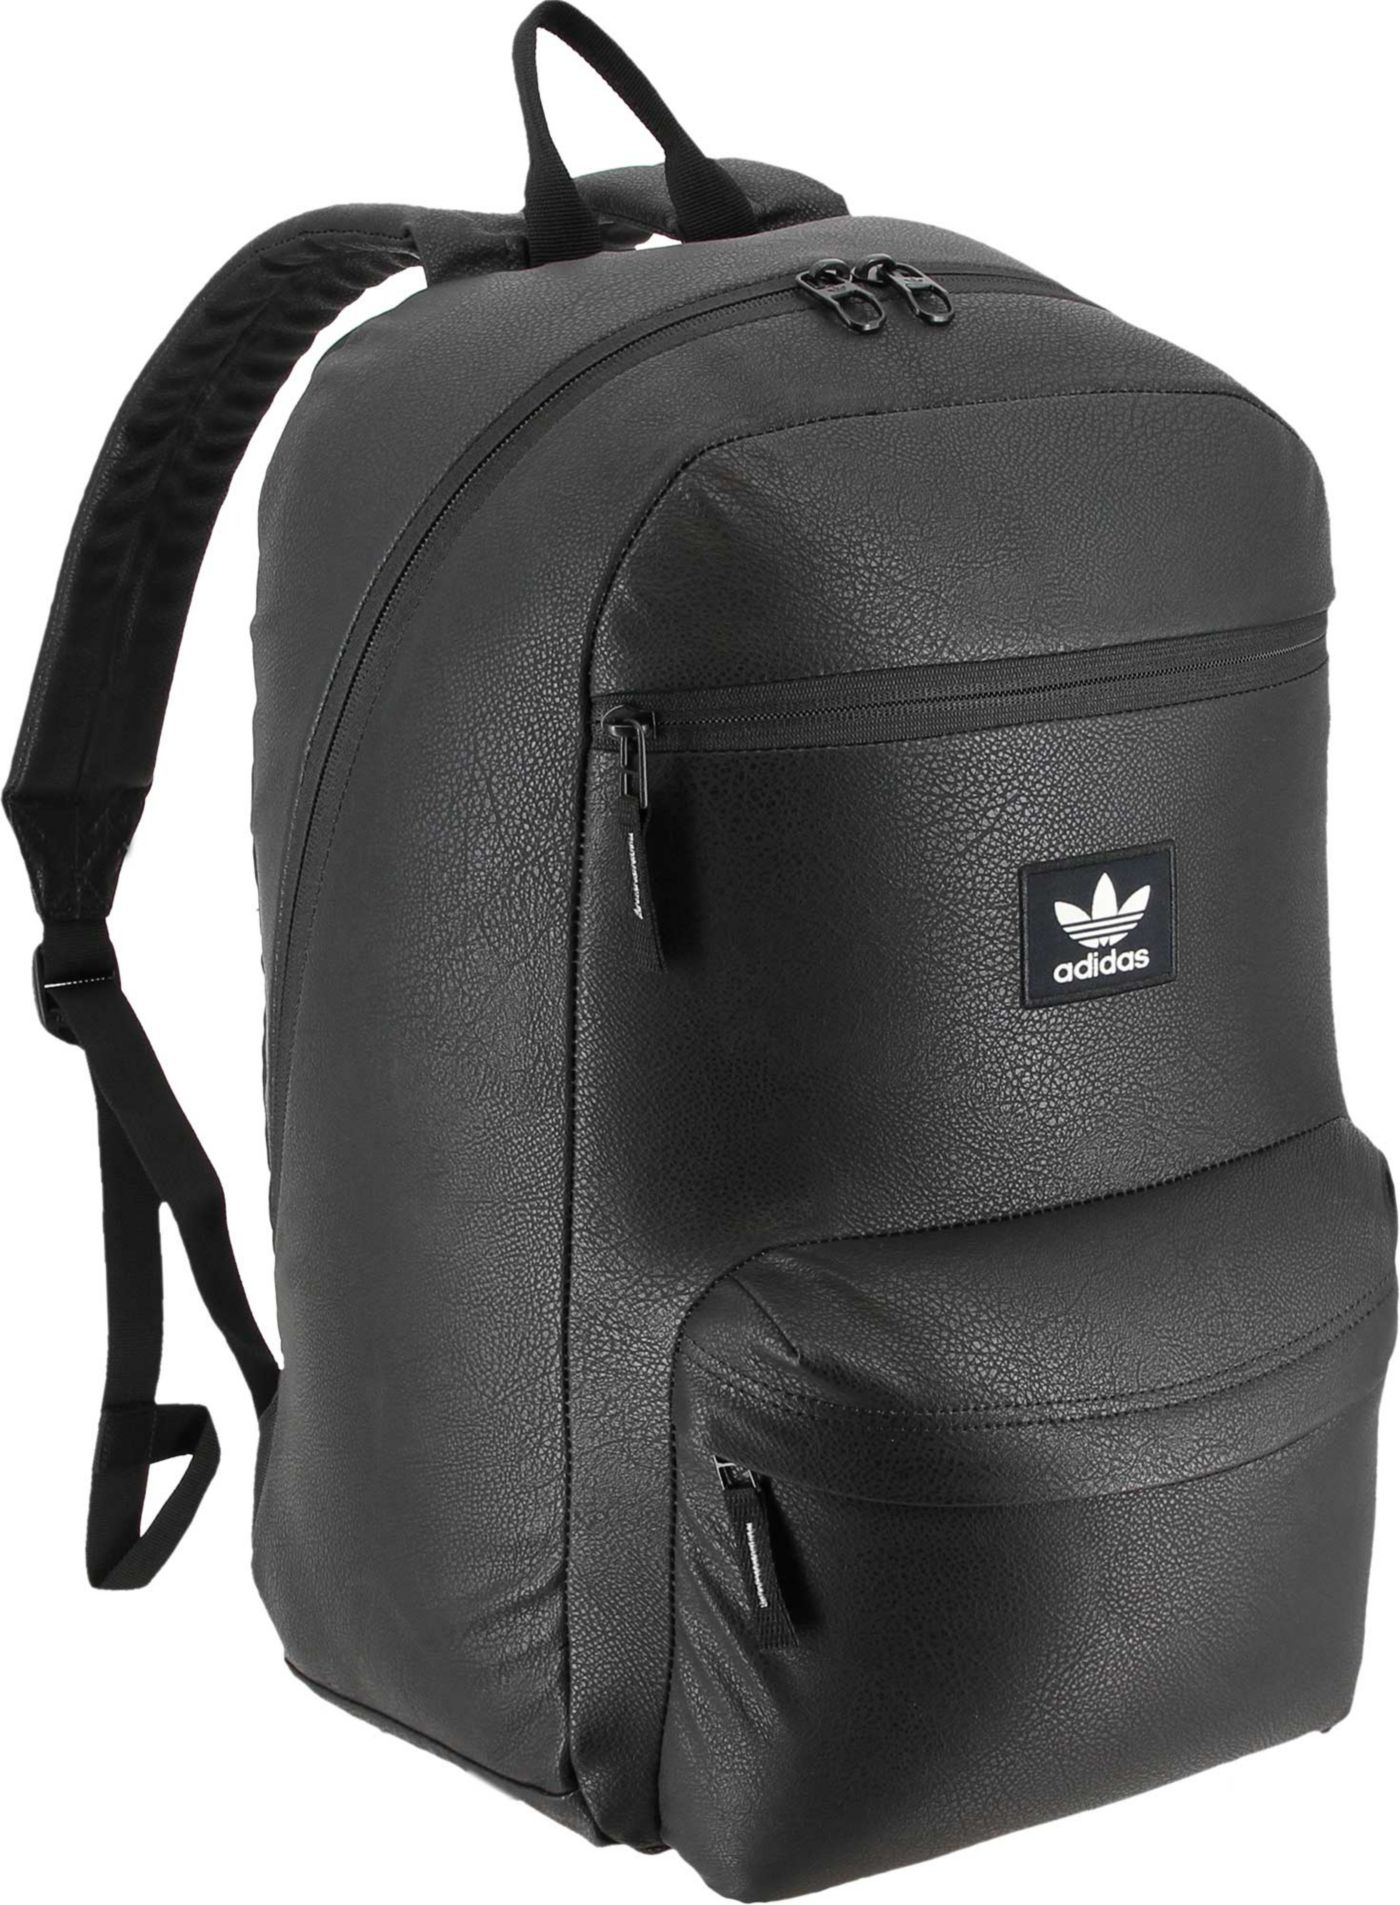 adidas Originals National Premium Backpack